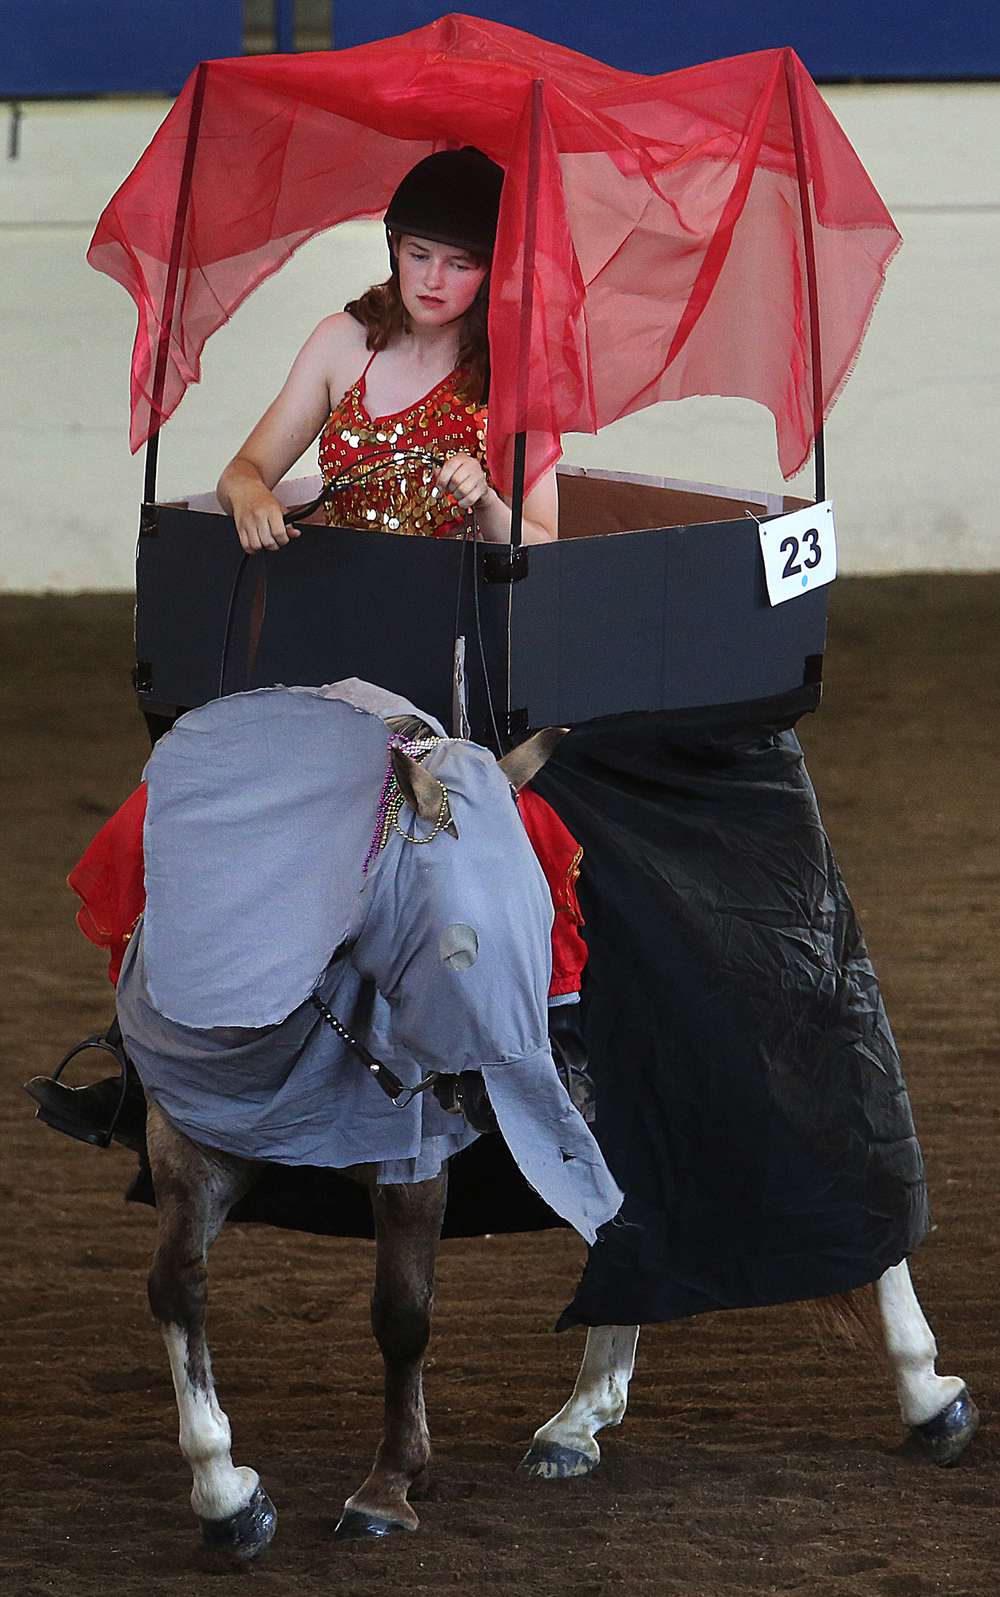 When your horse is an elephant, things are bound to get interesting in the show ring. Jessica Hall of Warren County puts her steed, aka: Marvelous Marvin Stud Muffin- through its paces for judges in the 4-H Junior Horse Show Costume Class Thursday, July 23, 2015 in the coliseum at the Illinois State Fairgrounds. David Spencer/The State Journal-Register